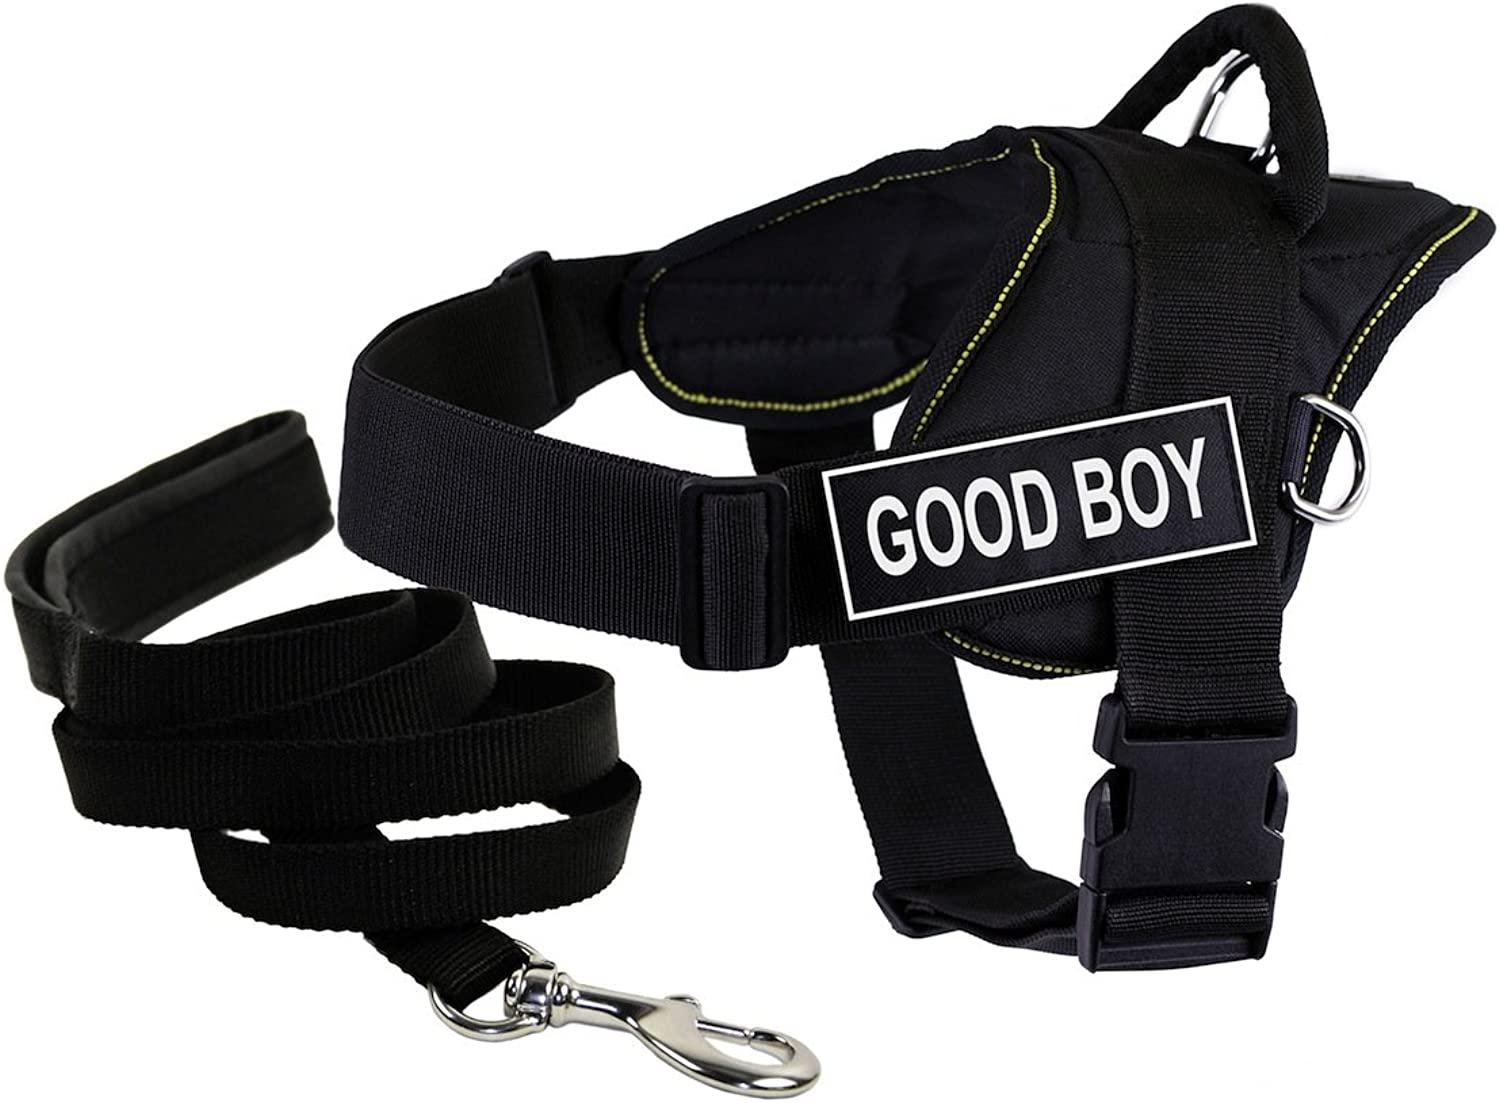 Dean & Tyler Bundle DT Fun Yellow Trim Small 22 to 27Inch Good Boy  Harness with Padded Puppy Leash and 6Feet Stainless Steel Snap, Black